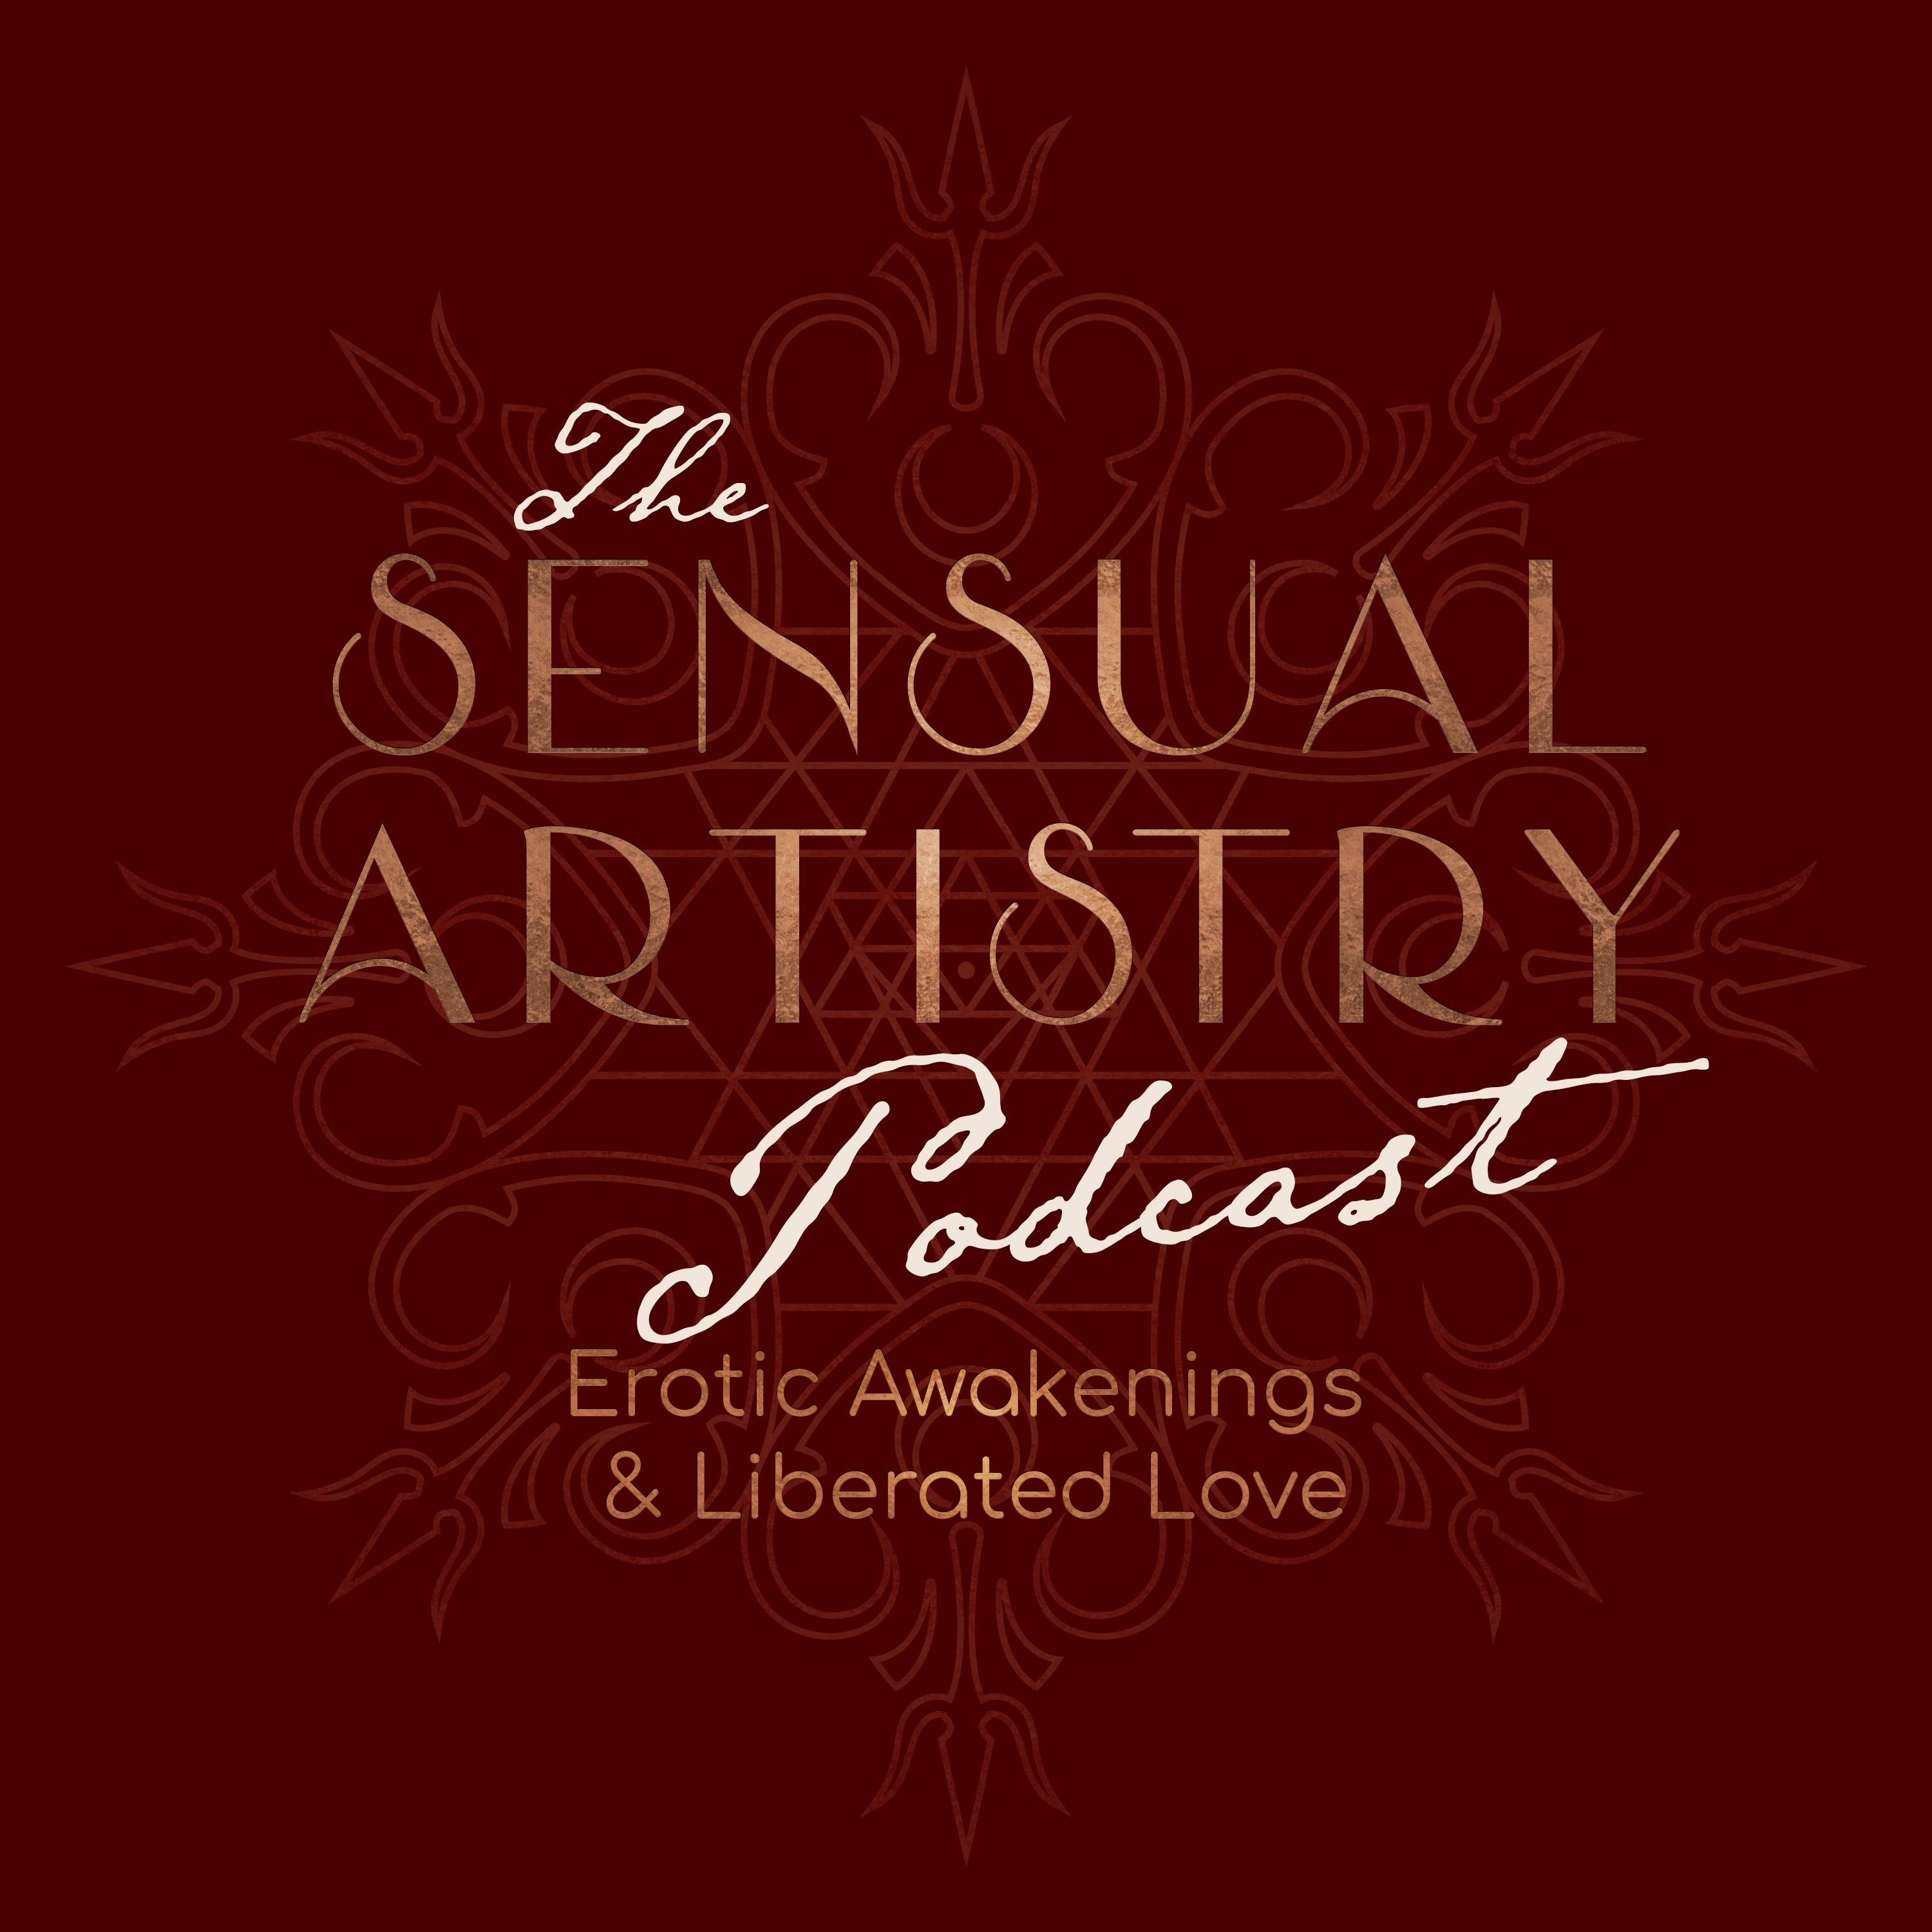 The Sensual Artistry Podcast